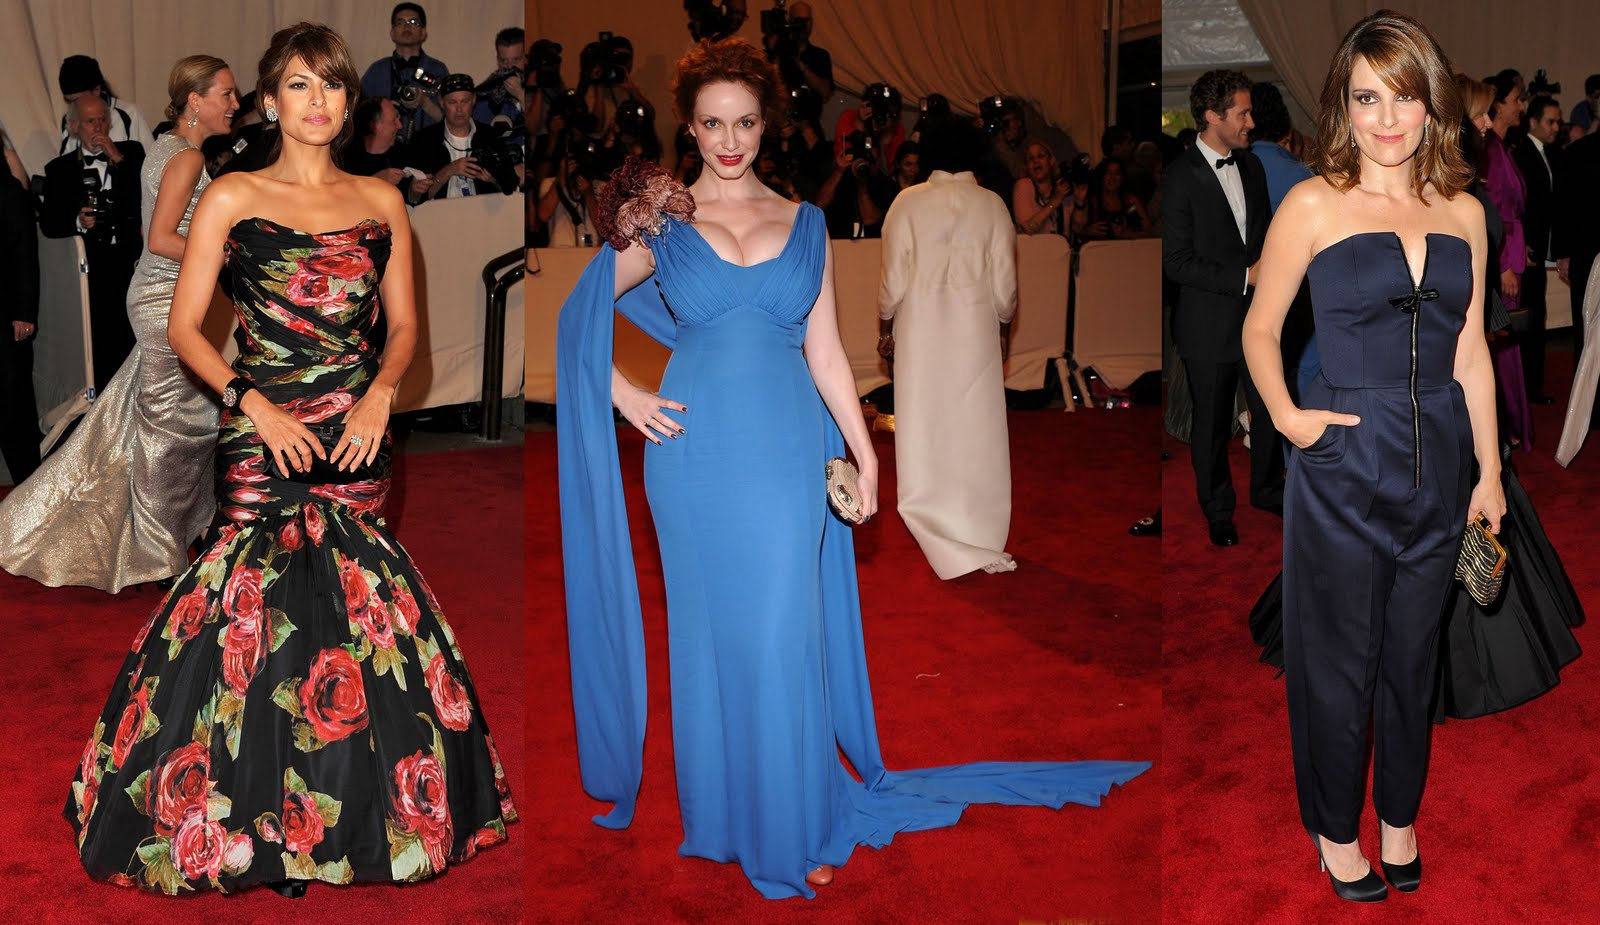 The 29 Most NSFW Celebrity Wardrobe Malfunctions | StyleCaster